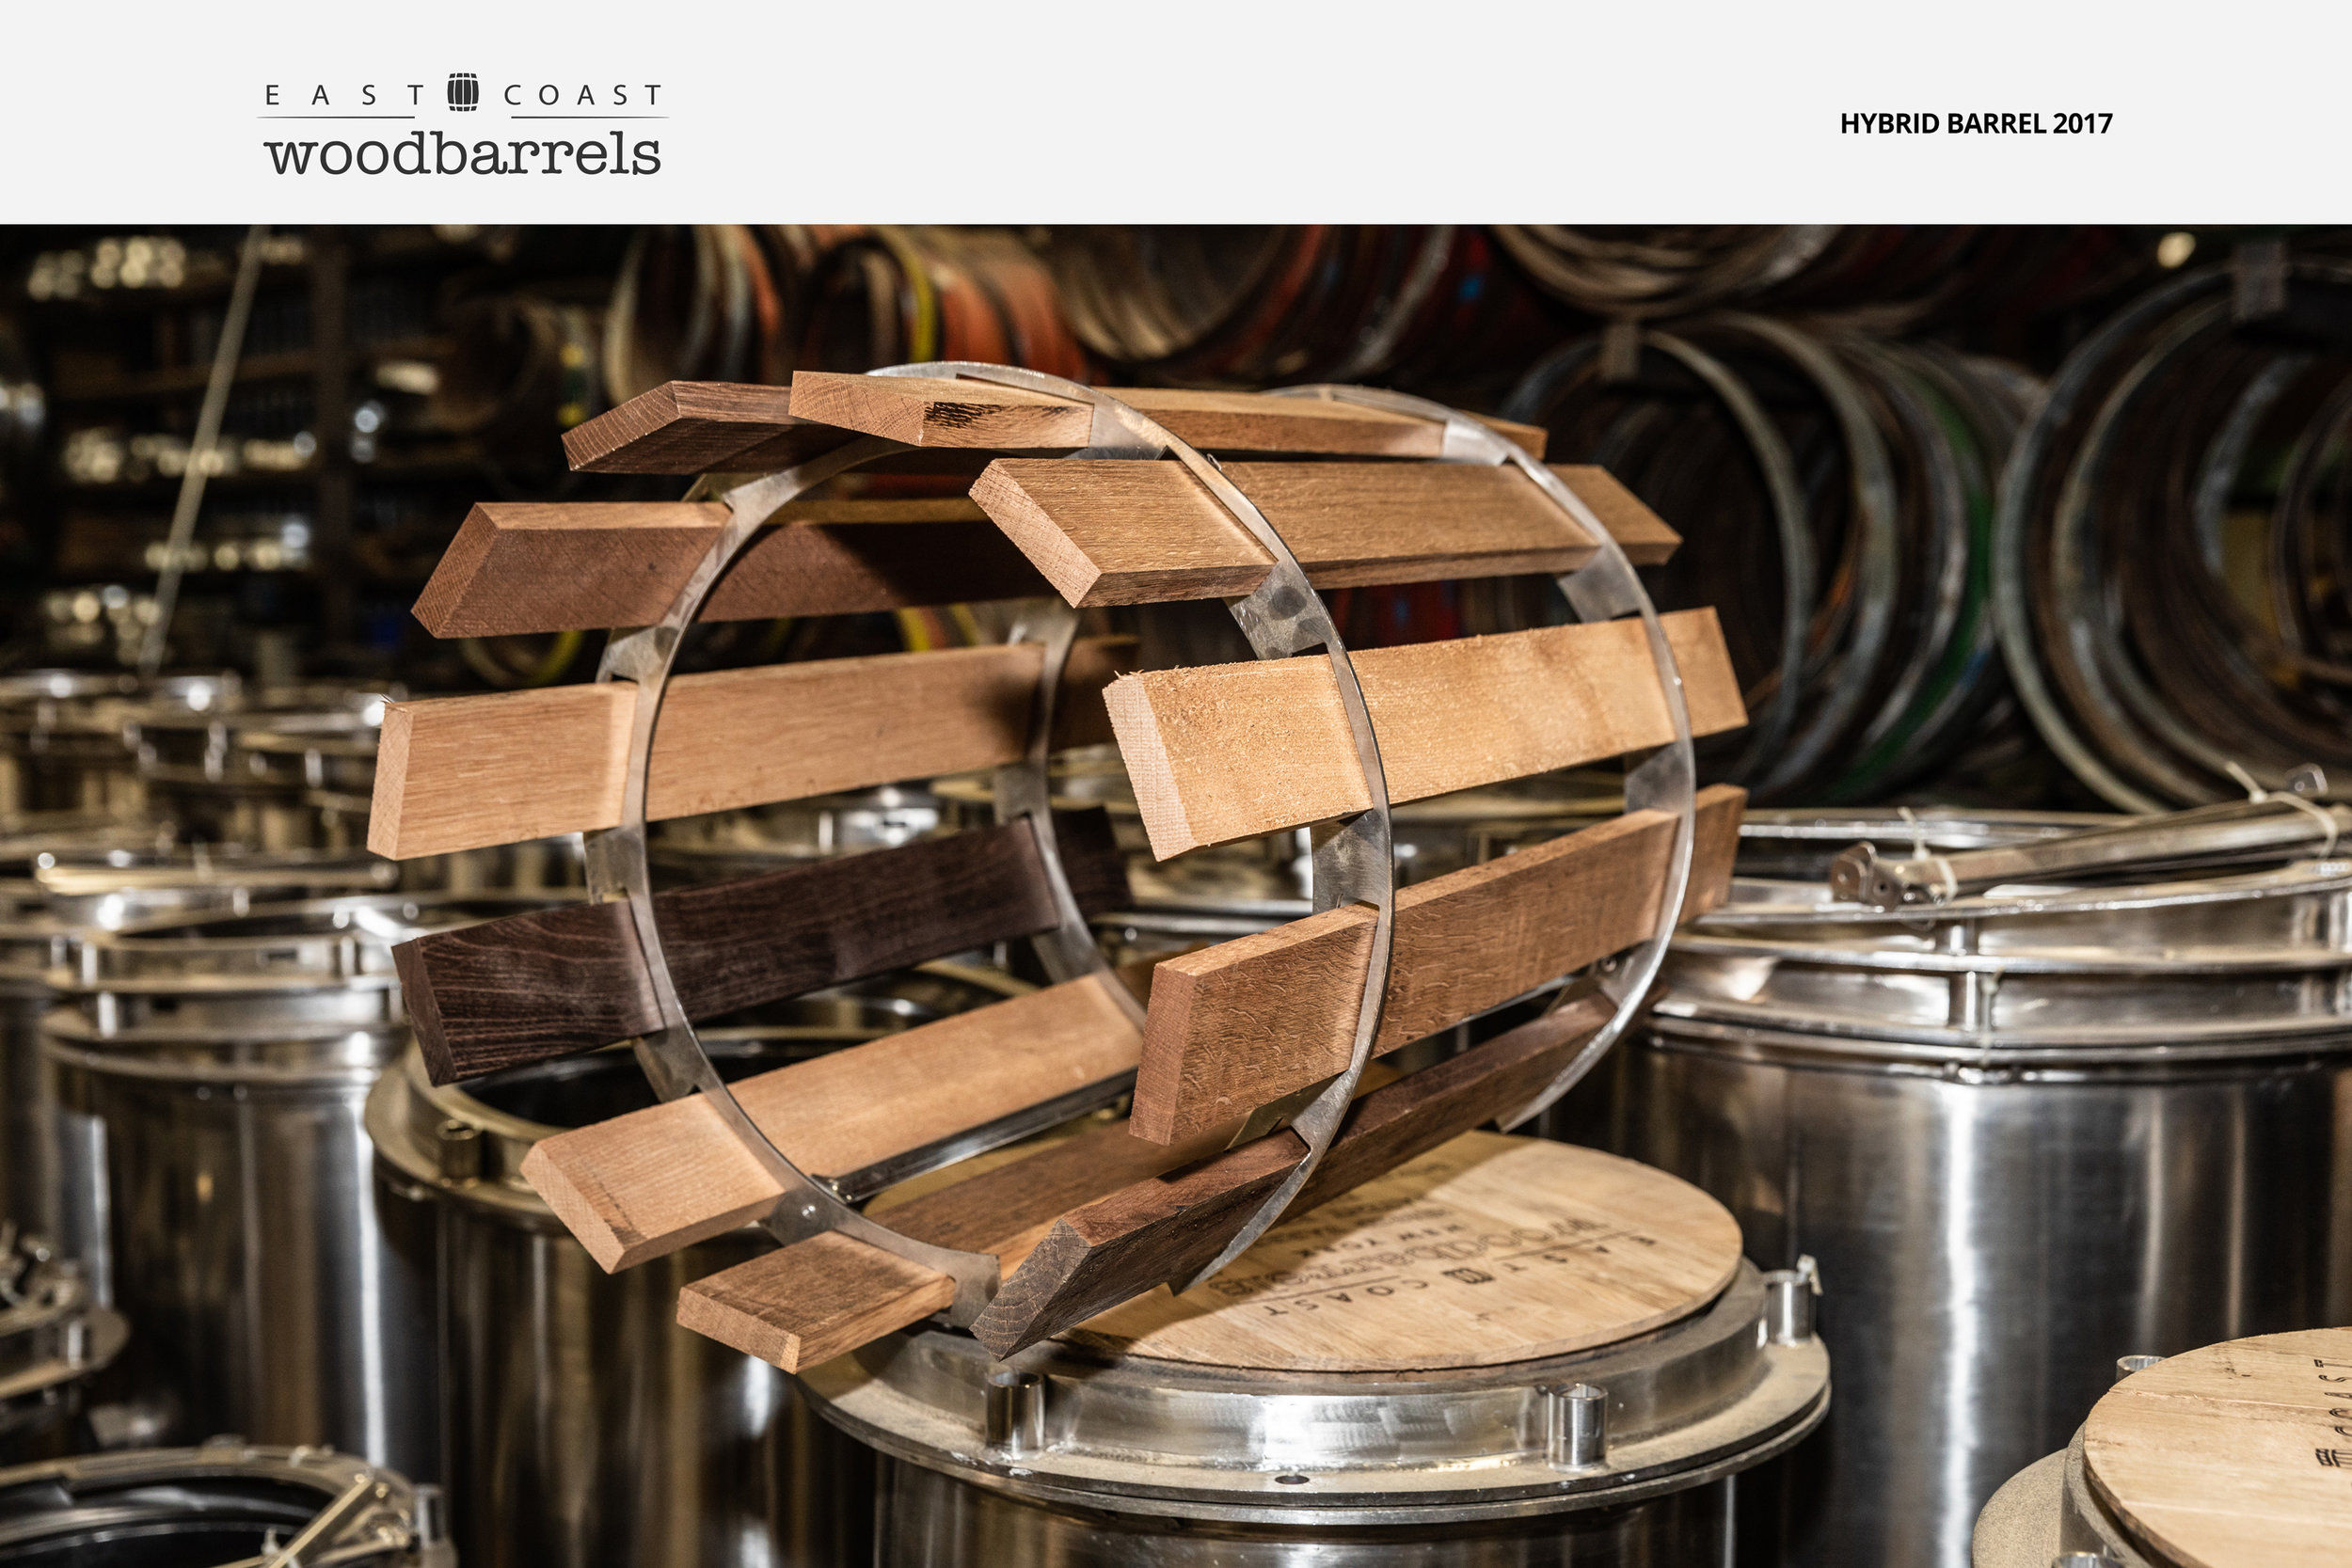 EAST-COAST-WOOD-BARRELS-WEB-IMAGES-6.jpg